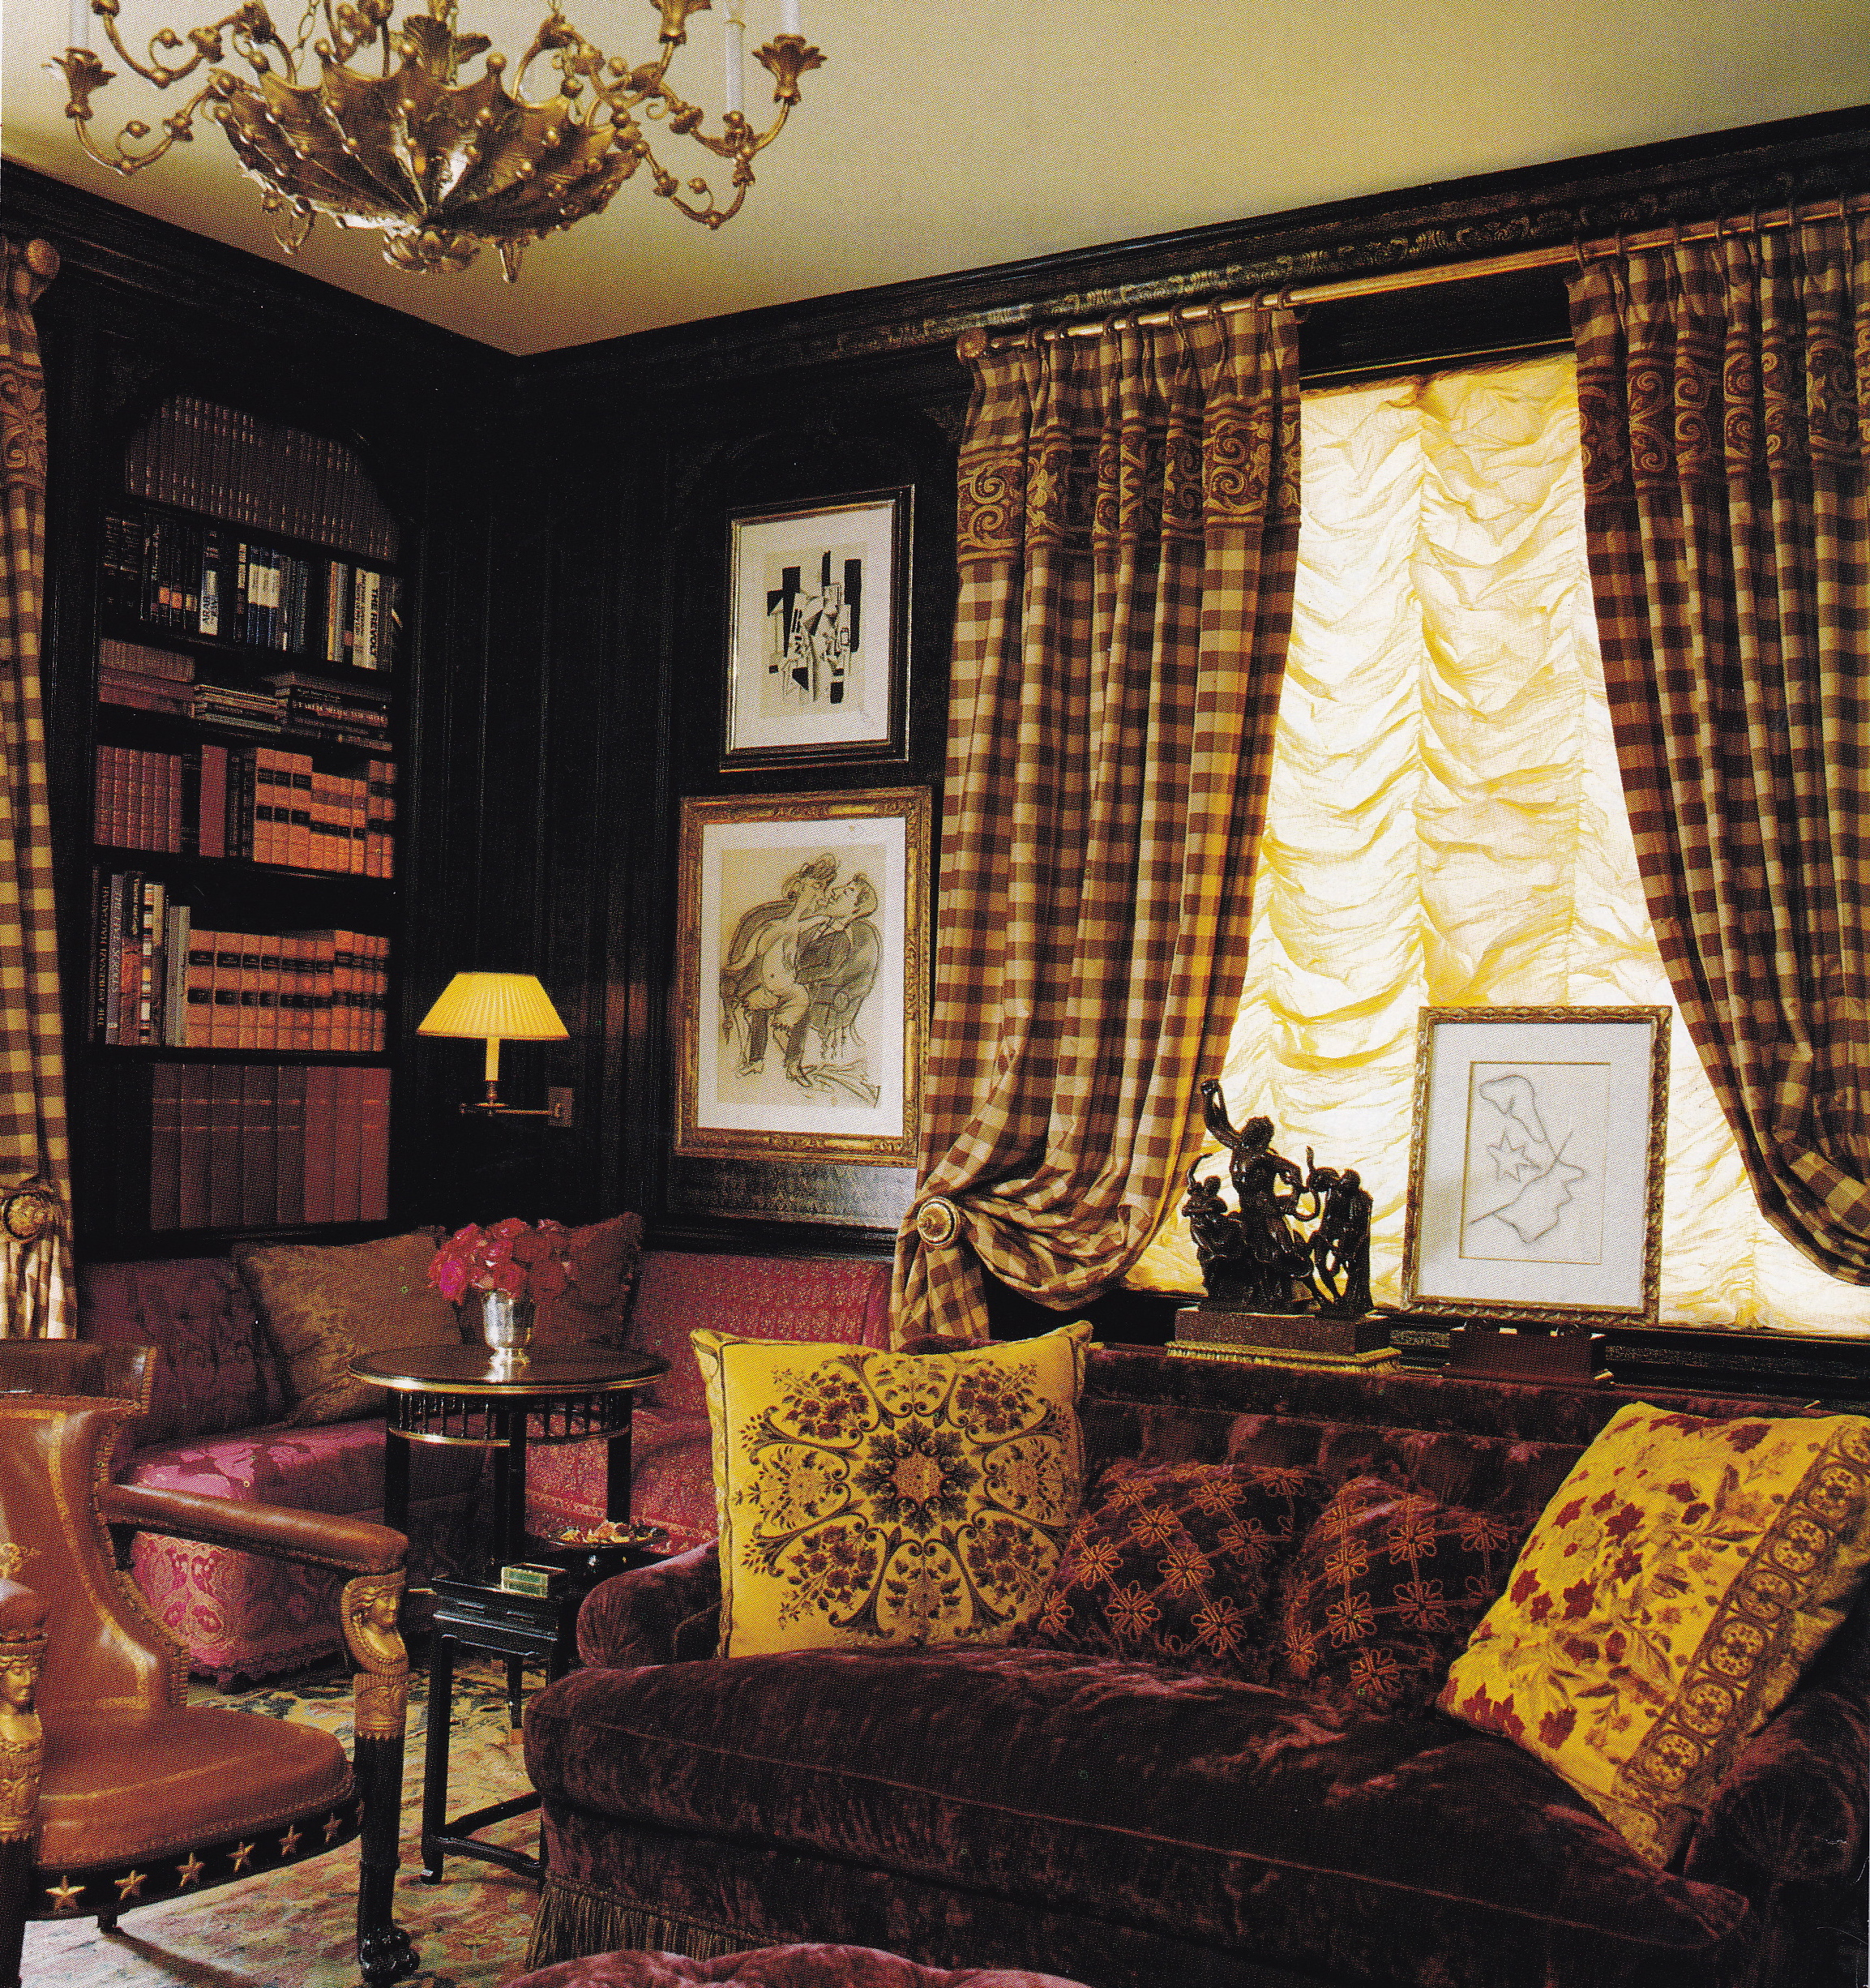 Russian Fantasia Then And Now Cristopher Worthland Interiors